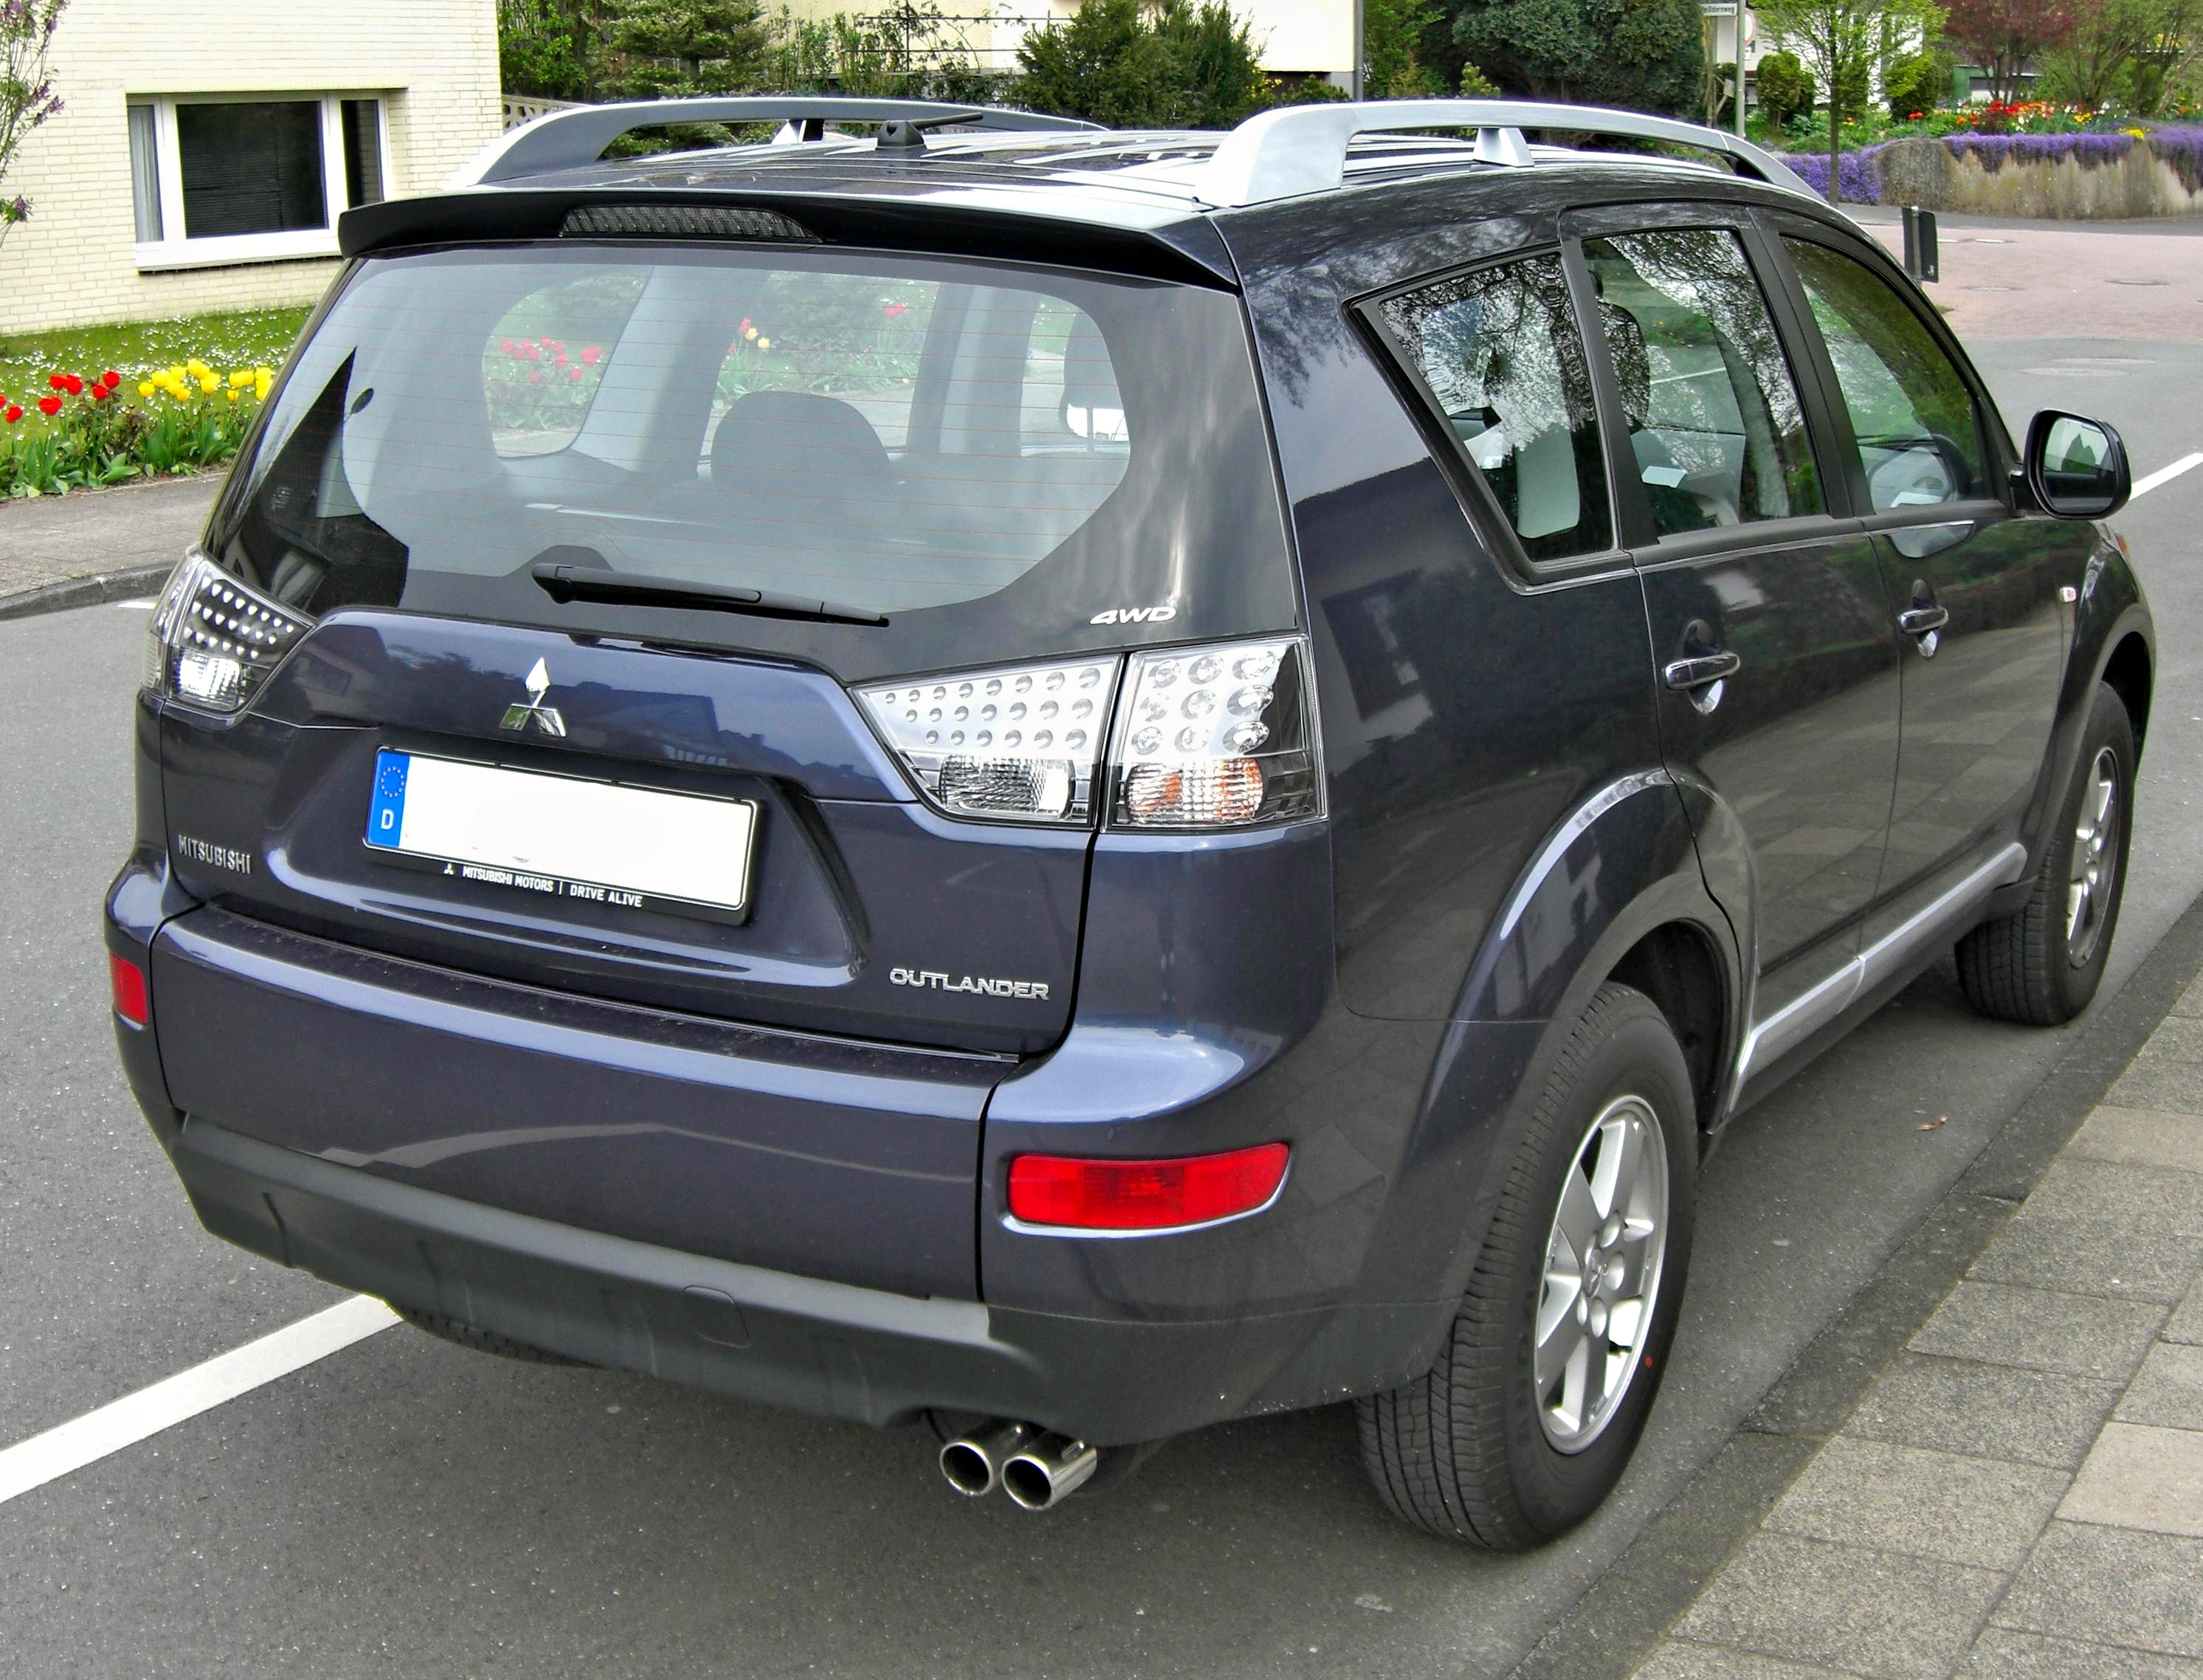 Mitsubishi_Outlander_Facelift_rear.jpg